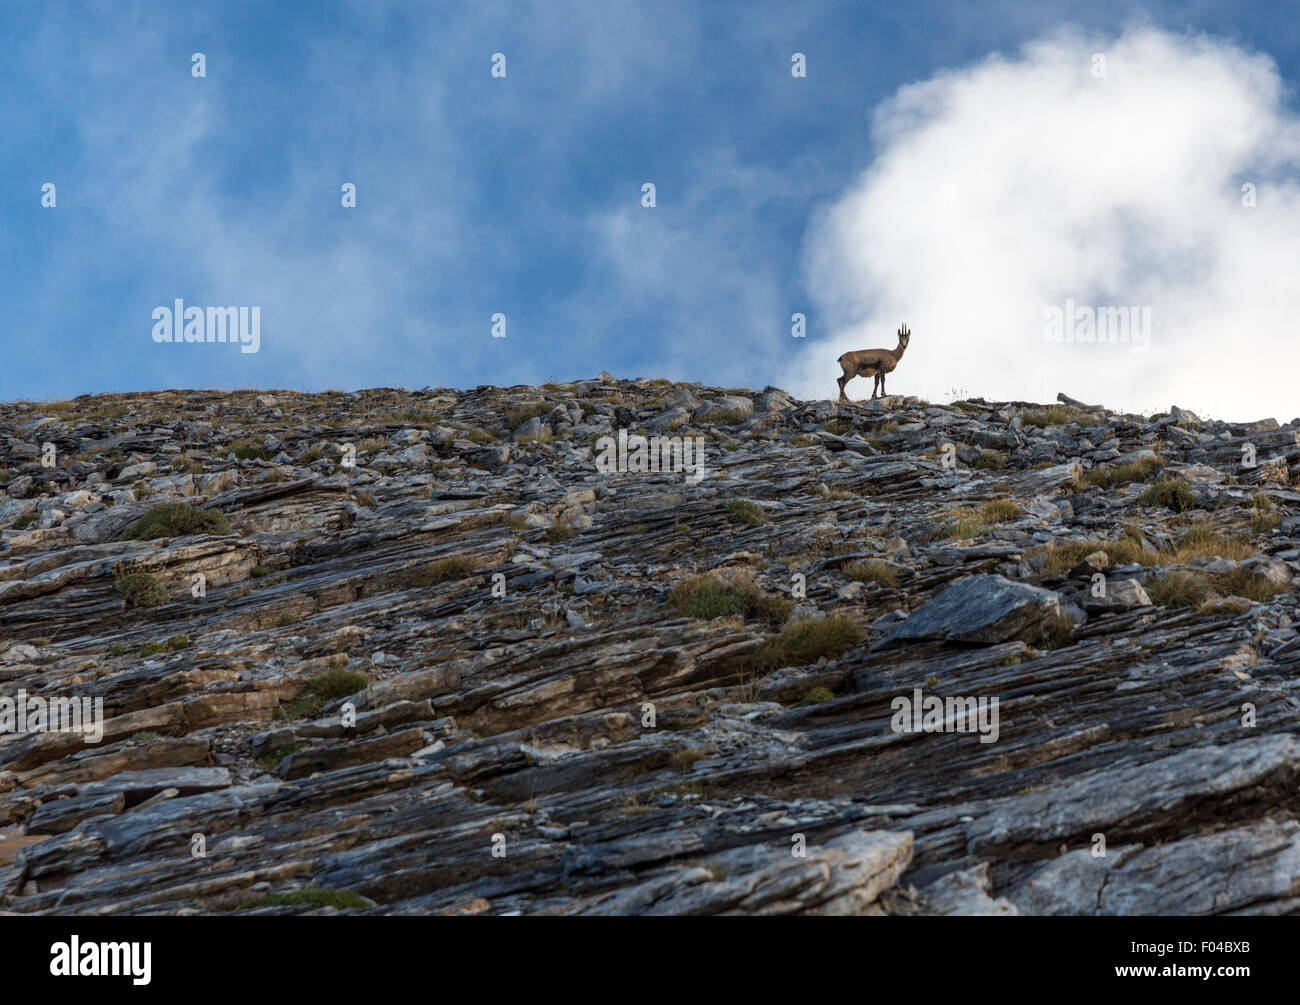 Ibex surveys the scene from its perch on a ridge above the trail to Mt Olympus Greece - Stock Image